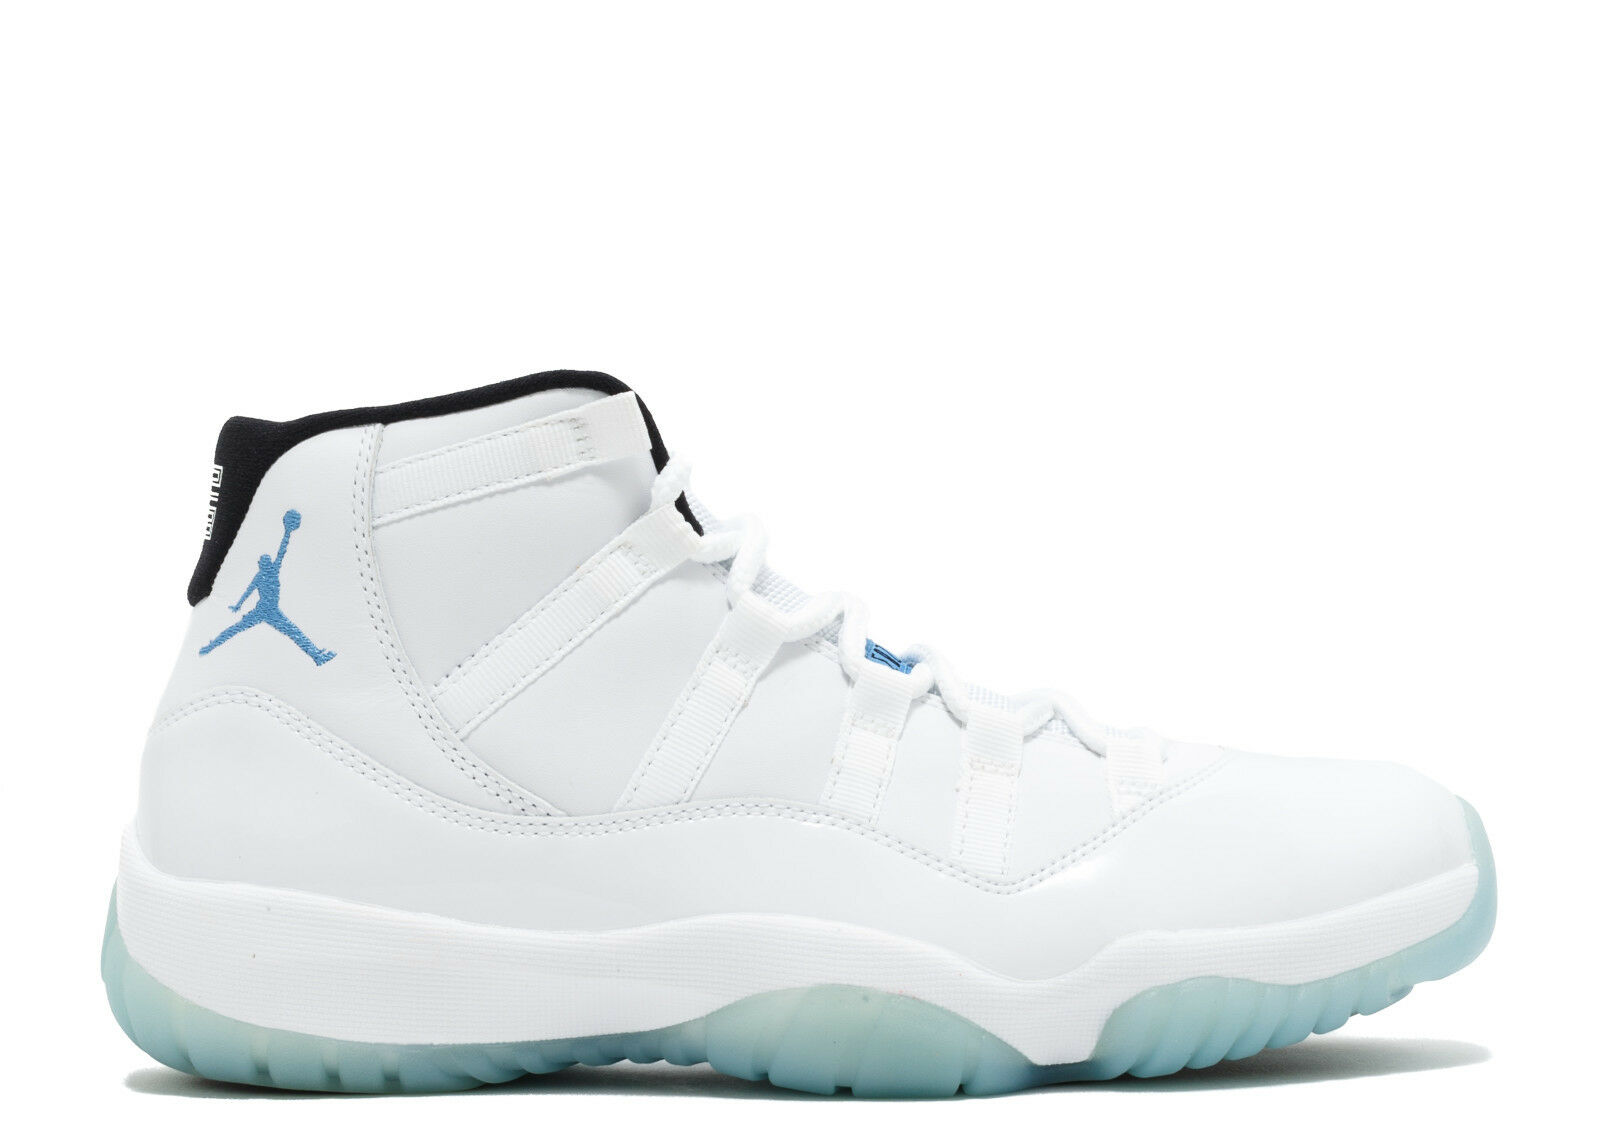 20f8183da1a Nike Air Jordan 11 Retro Legend bluee Columbia 378037-117 DS off white